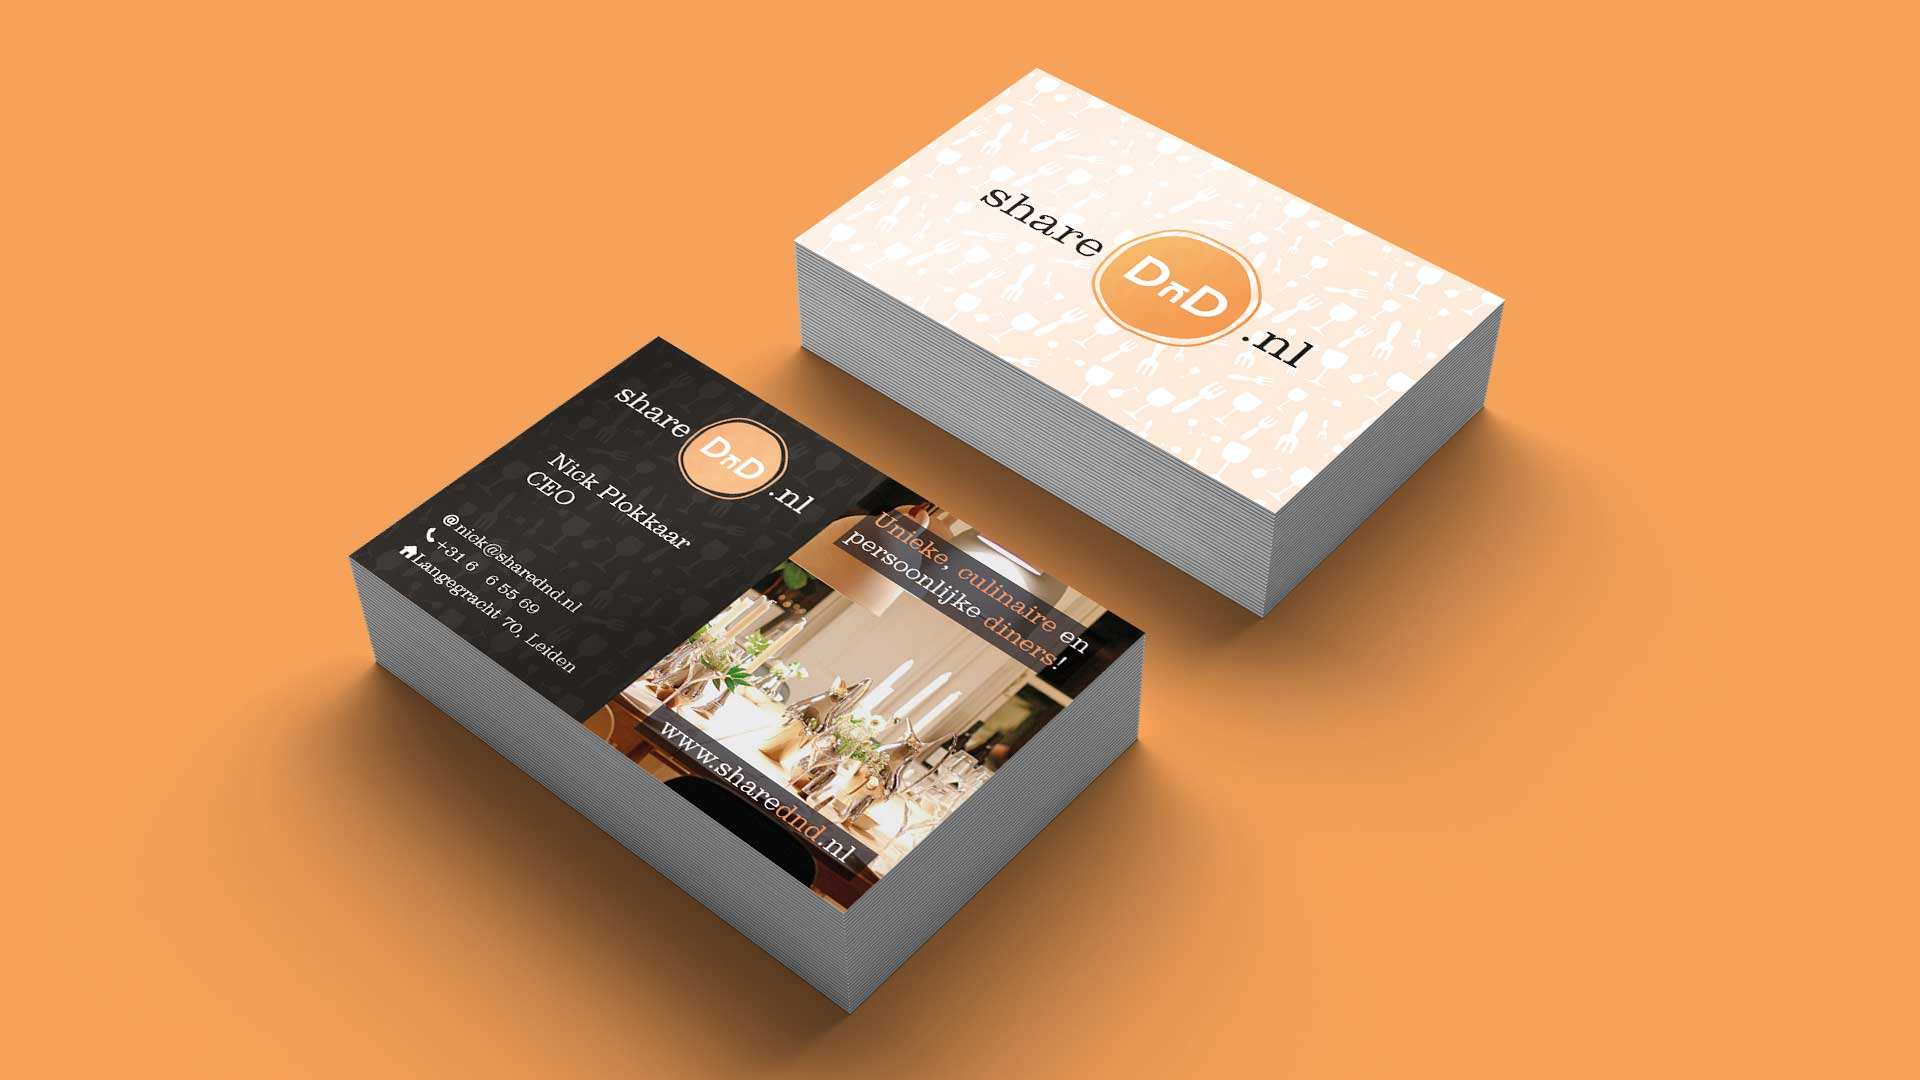 Pixelwish, Design, ShareDnD, Visitekaart, Business, Card, Mockup